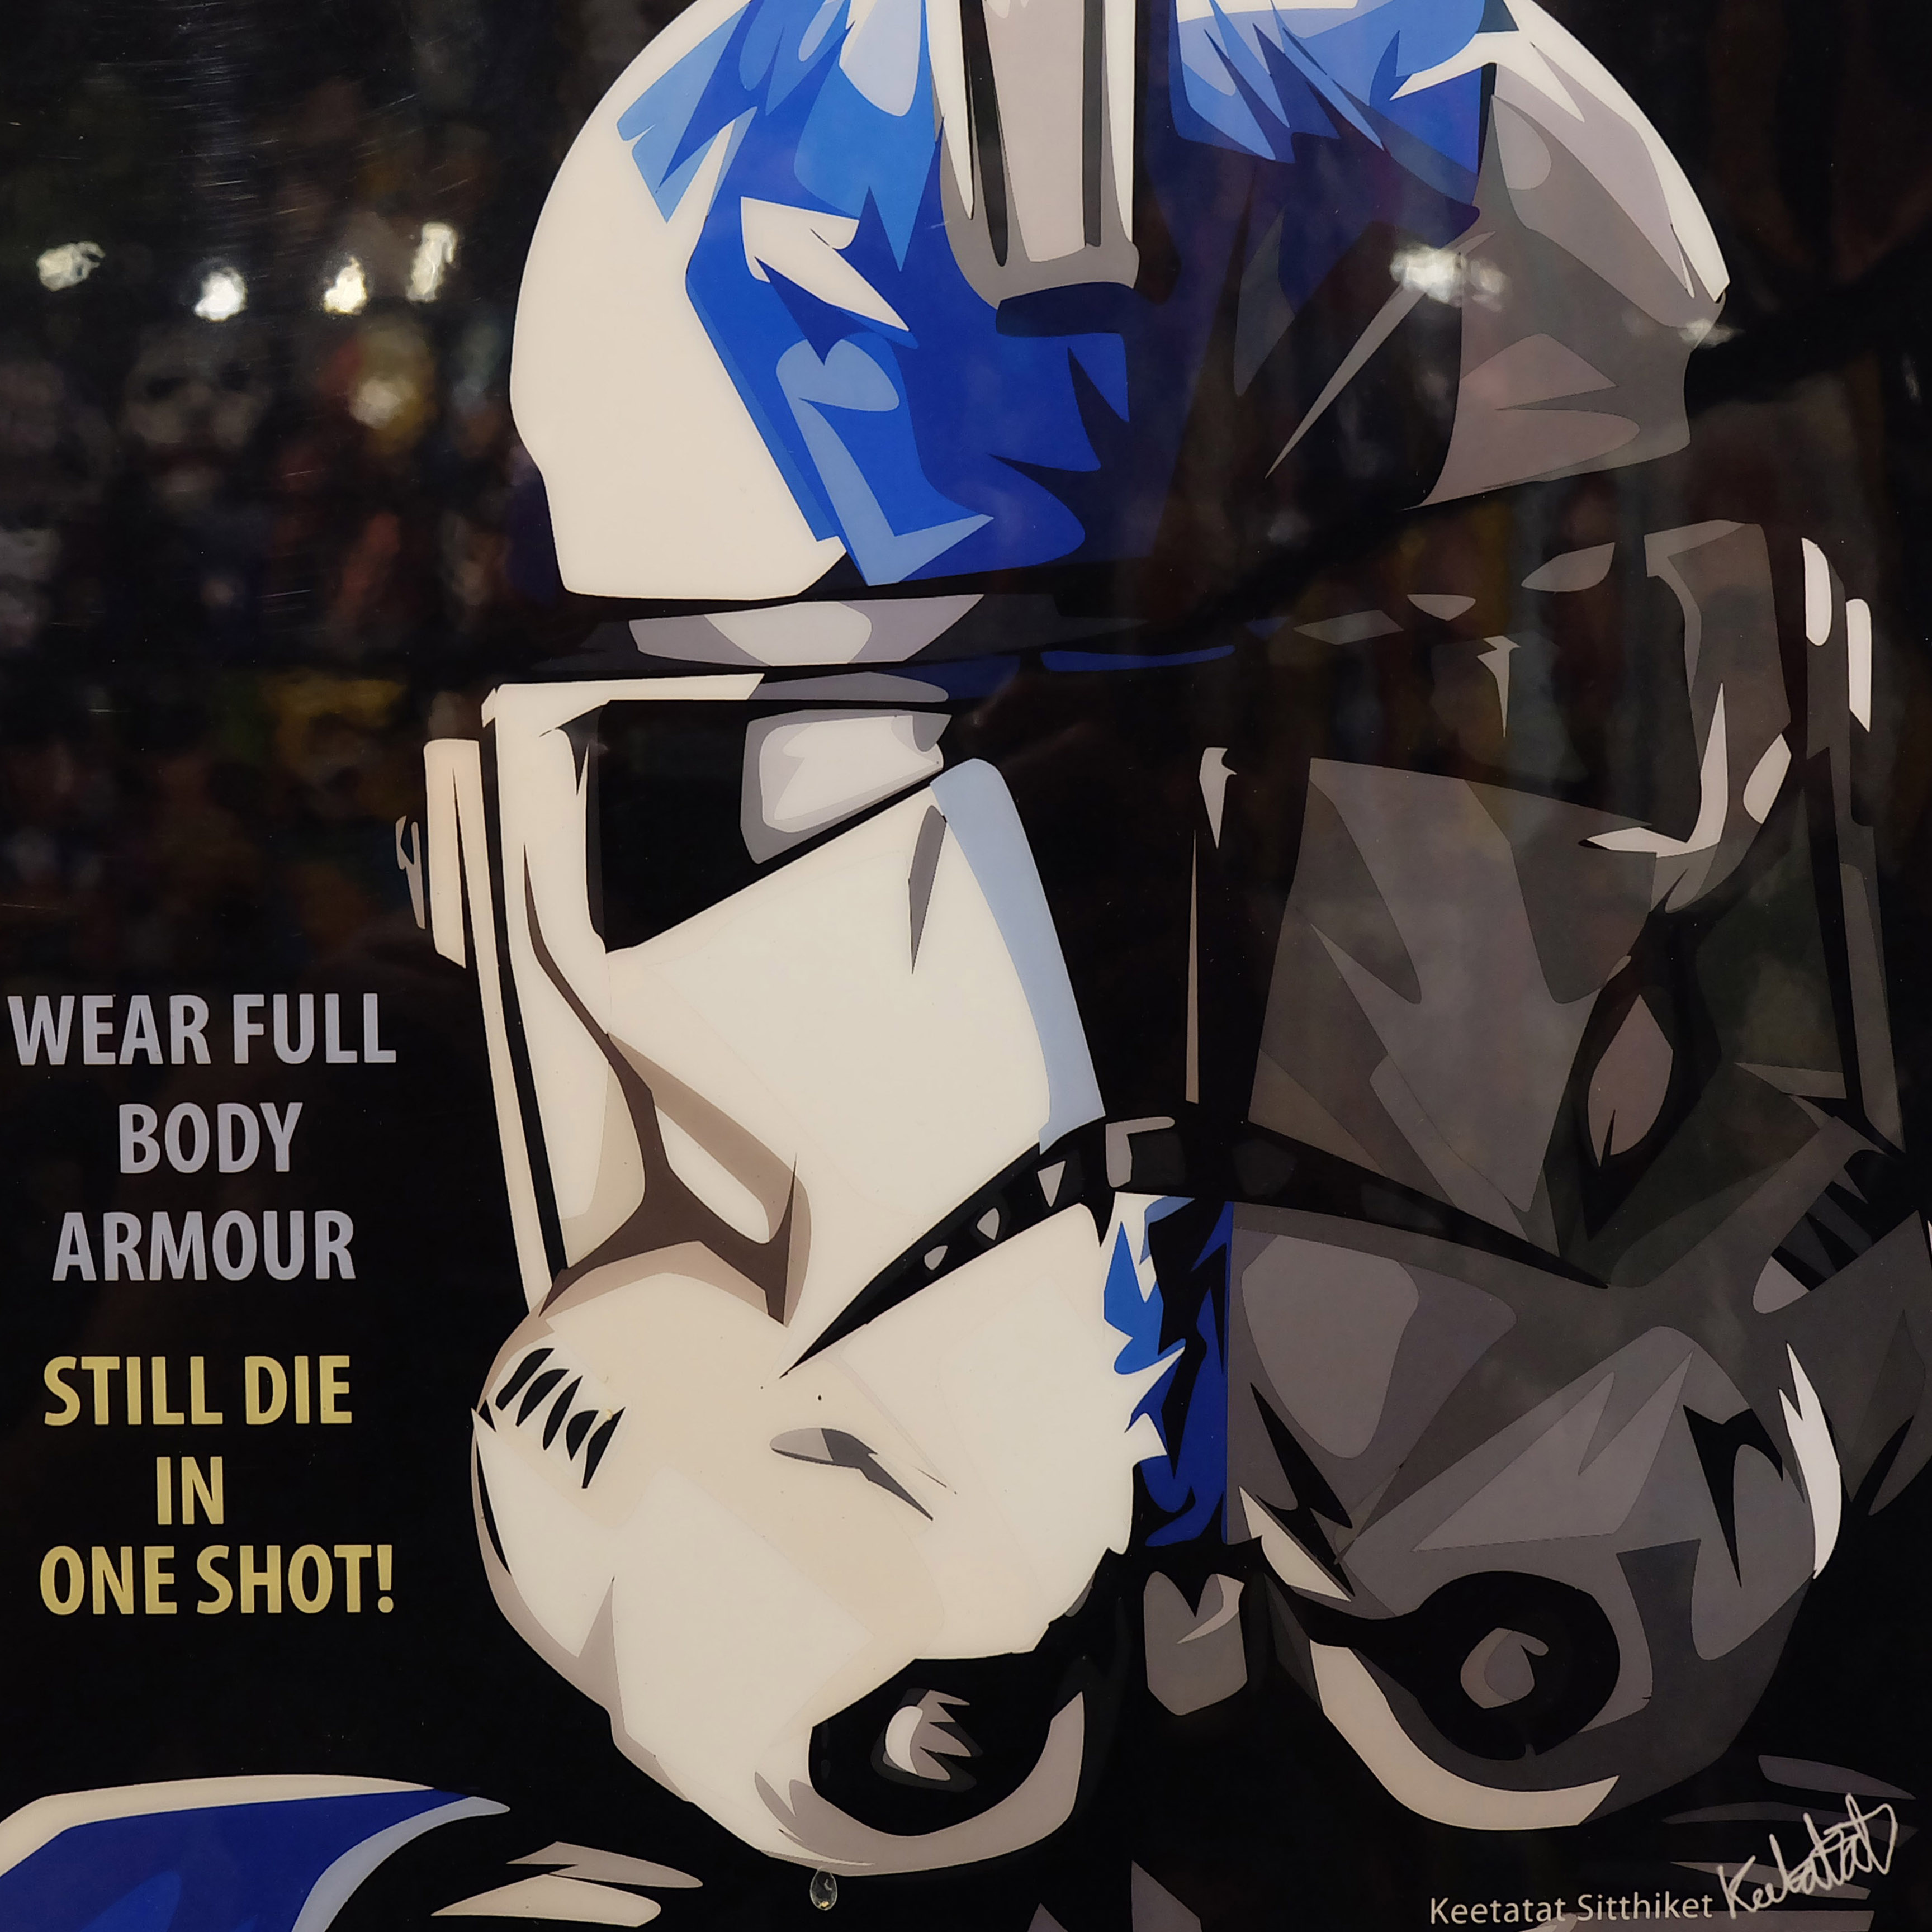 Stormtrooper Pop Art Poster By Keetatat Sitthiket Infamous Inspiration